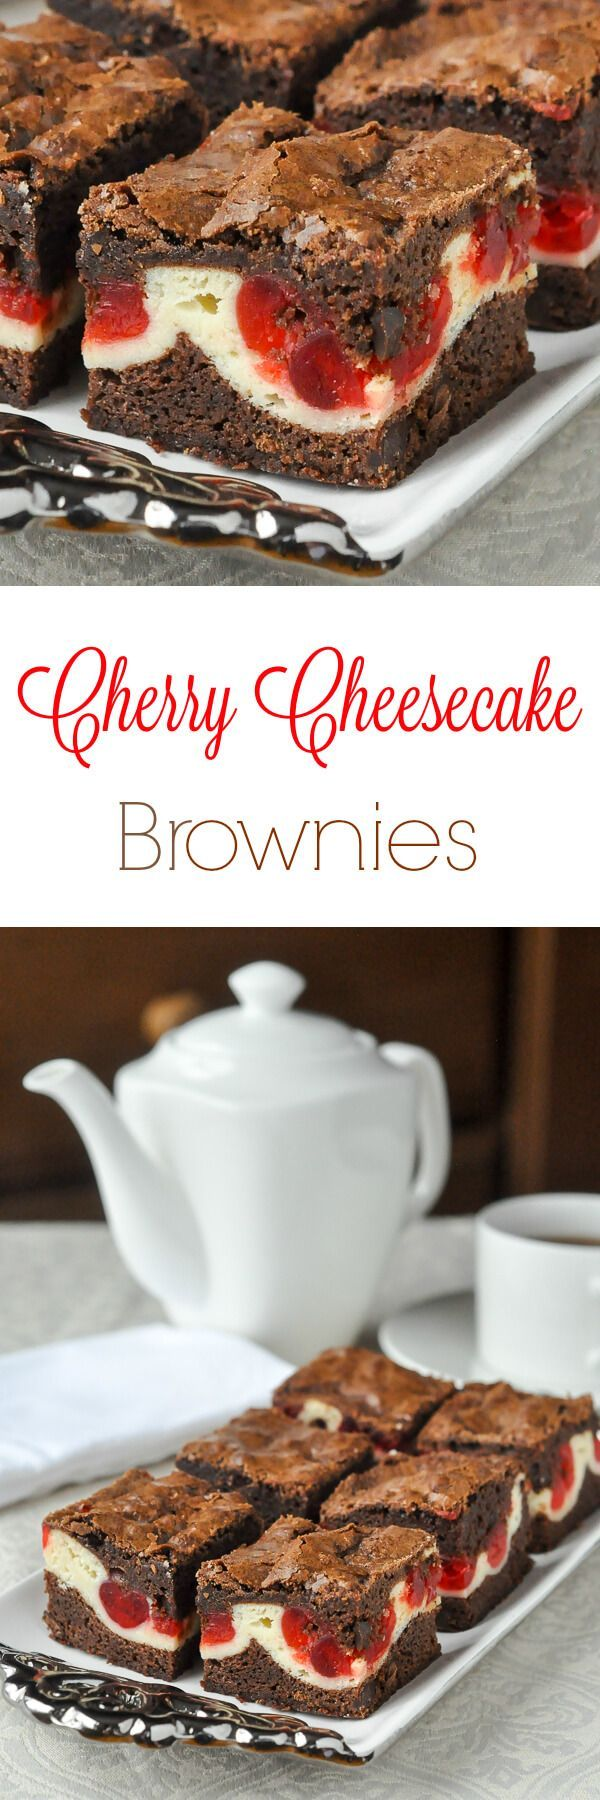 Cherry Cheesecake Brownies - an outstanding soft chewy brownie with a cheesecake centre that gets sweet glacé cherries baked into it. Another great freezer friendly cookie bar recipe.